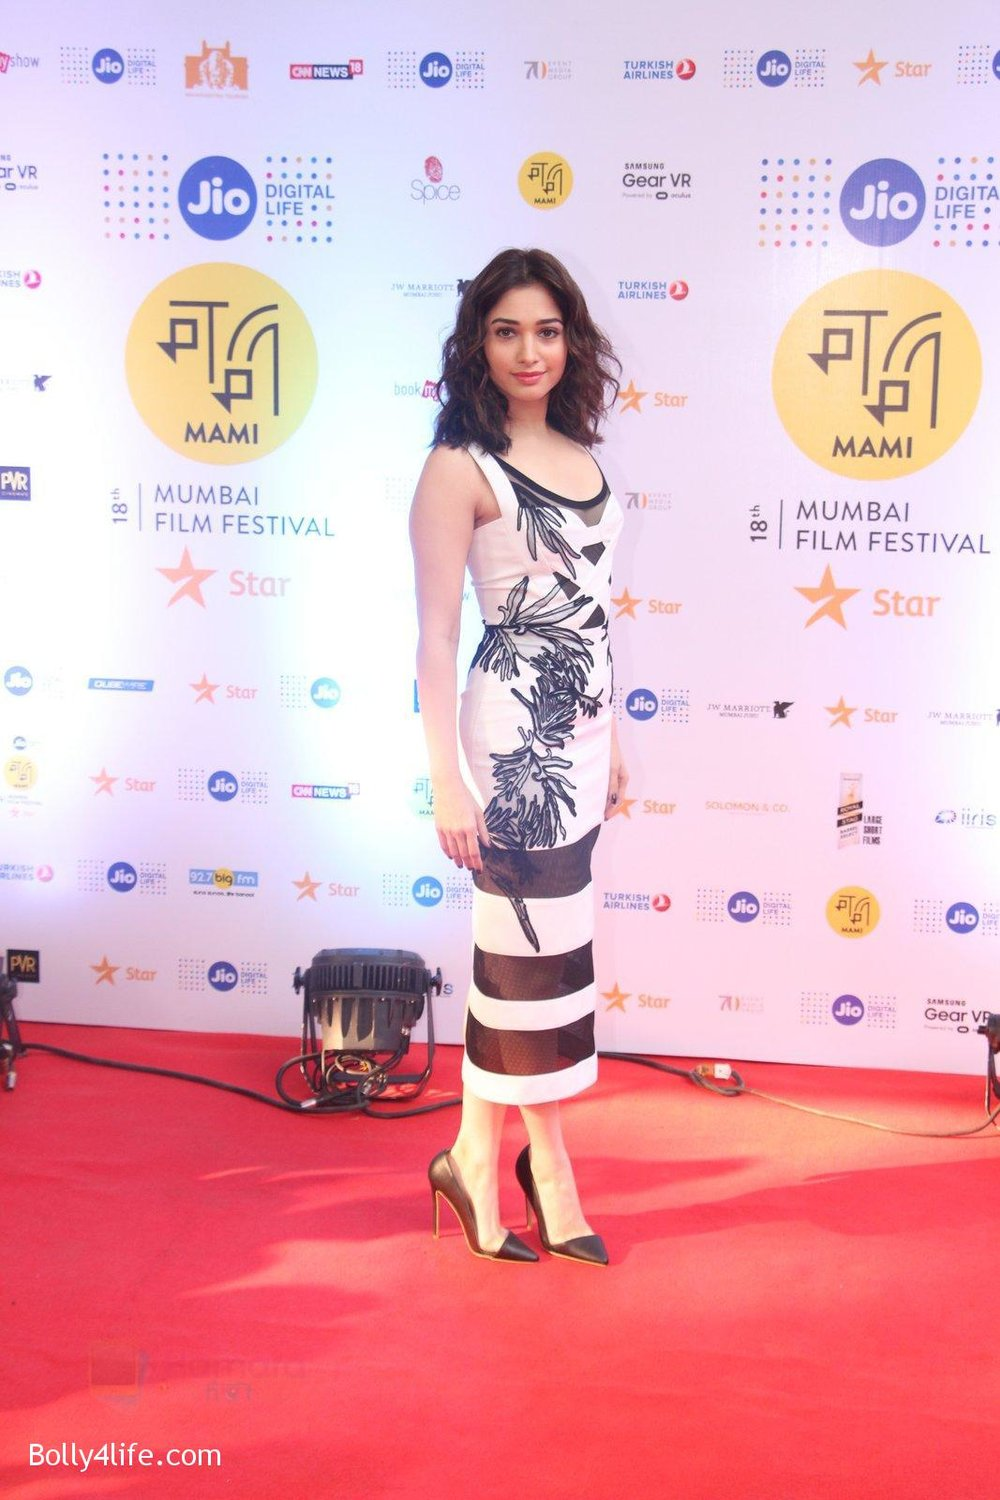 Tamannaah-Bhatia-at-MAMI-Film-Festival-2016-Day-2-on-22nd-Oct-2016-59.jpg